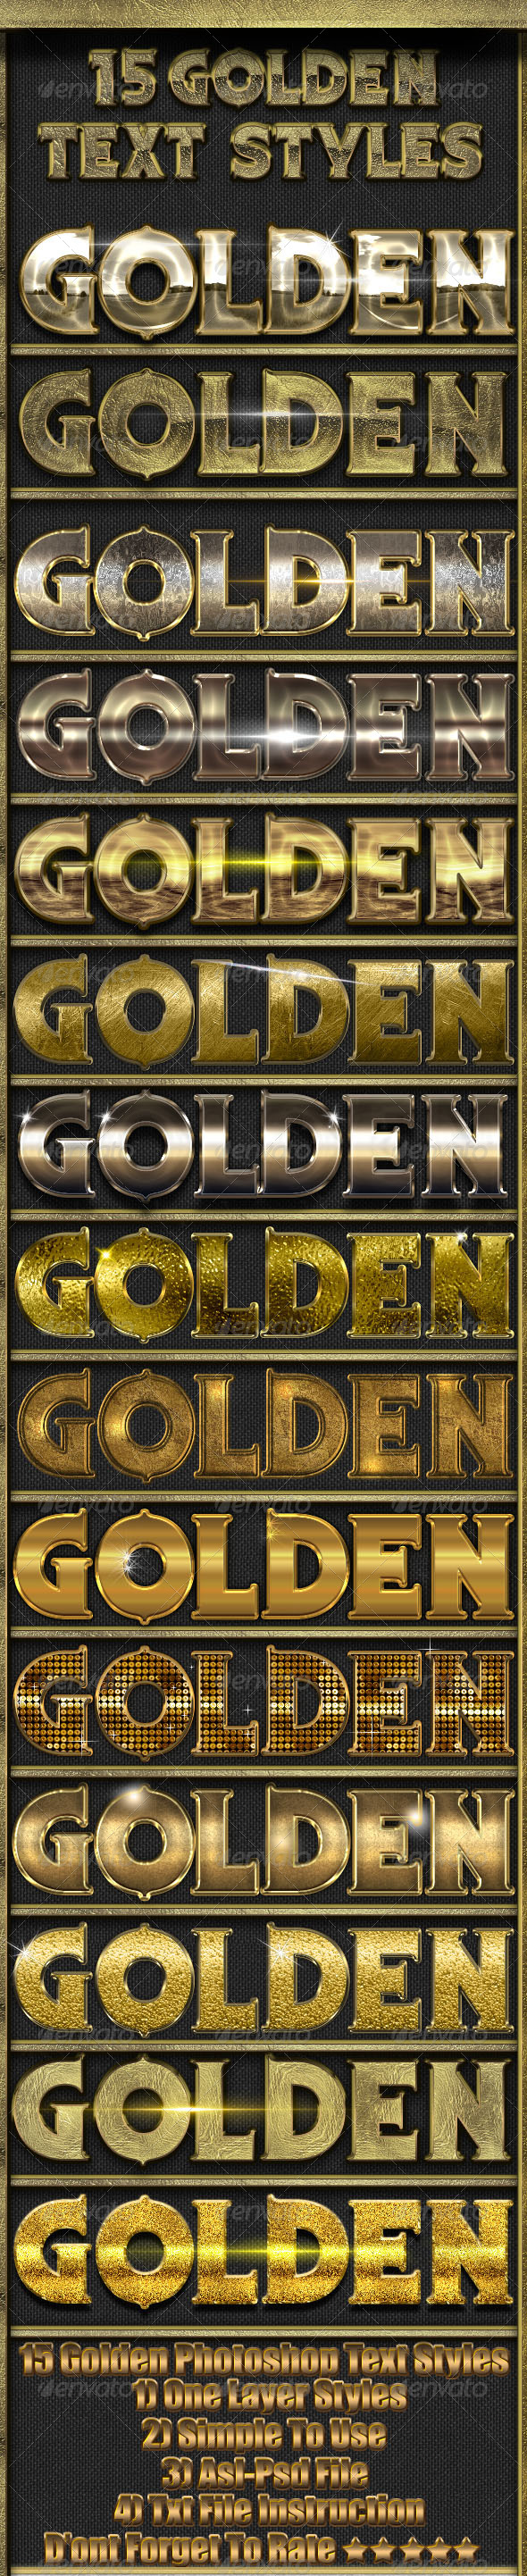 GraphicRiver 15 Golden Text Styles 6156623